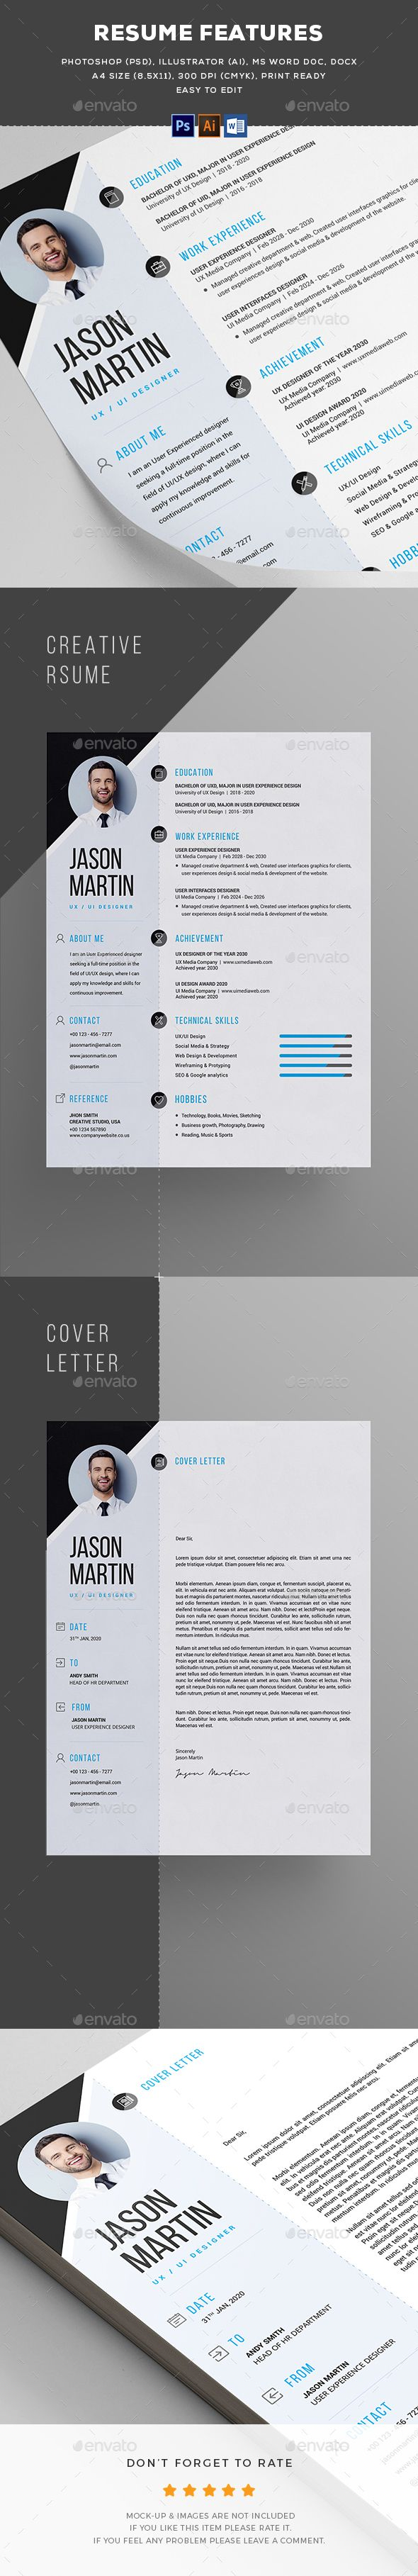 10 best 01 images on Pinterest | Brochure template, Flyer design and ...